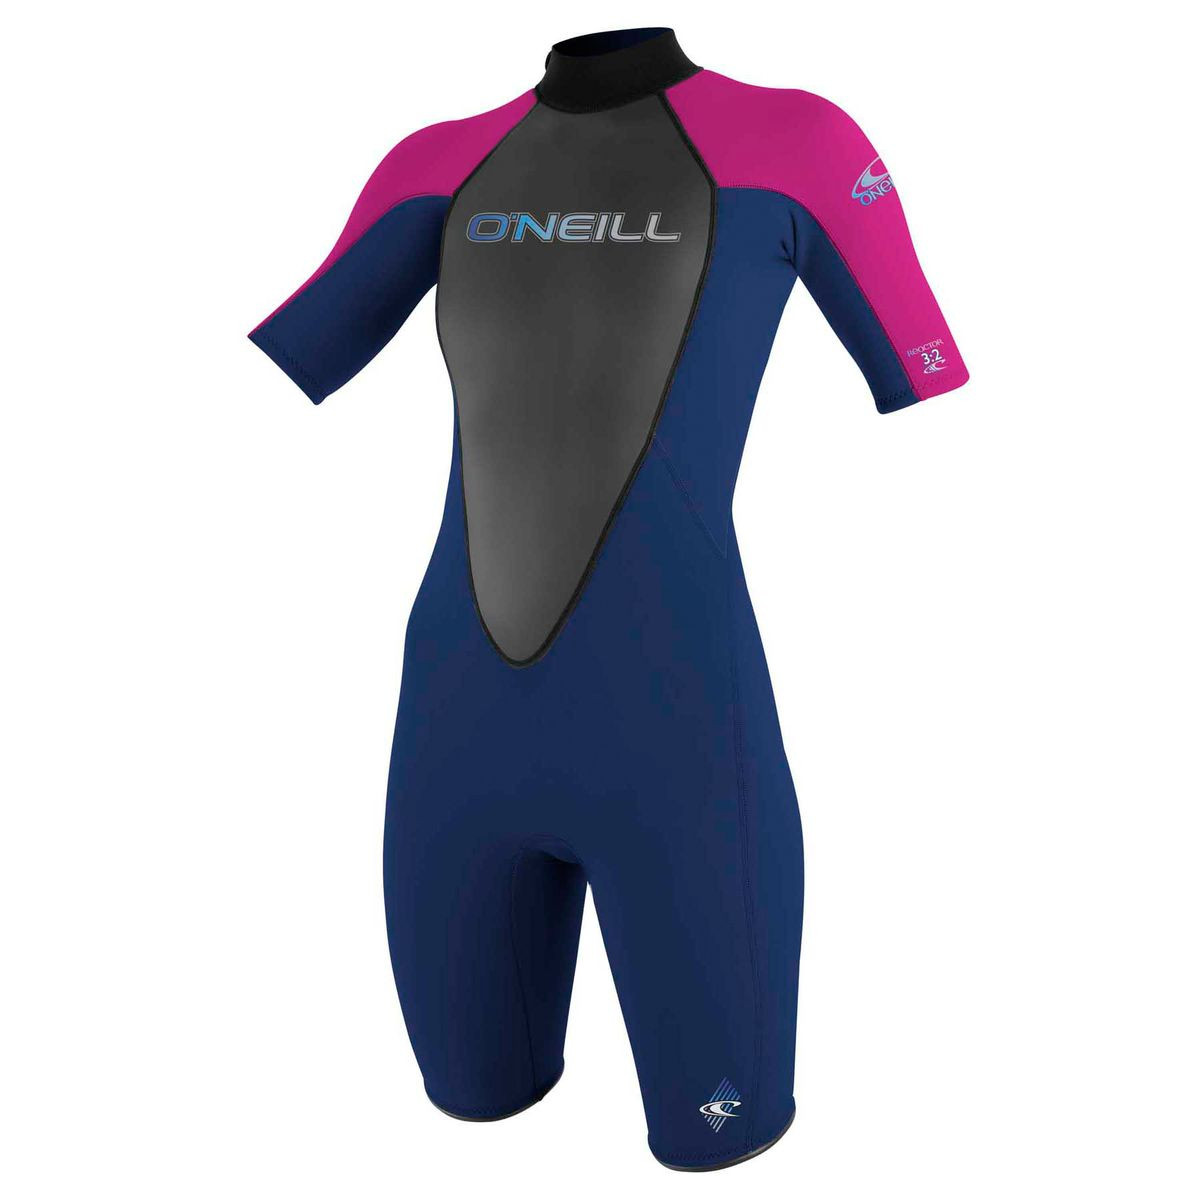 O'Neill Womens Reactor 2mm Shorty Wetsuit - Navy/ Punk Pink/ Navy